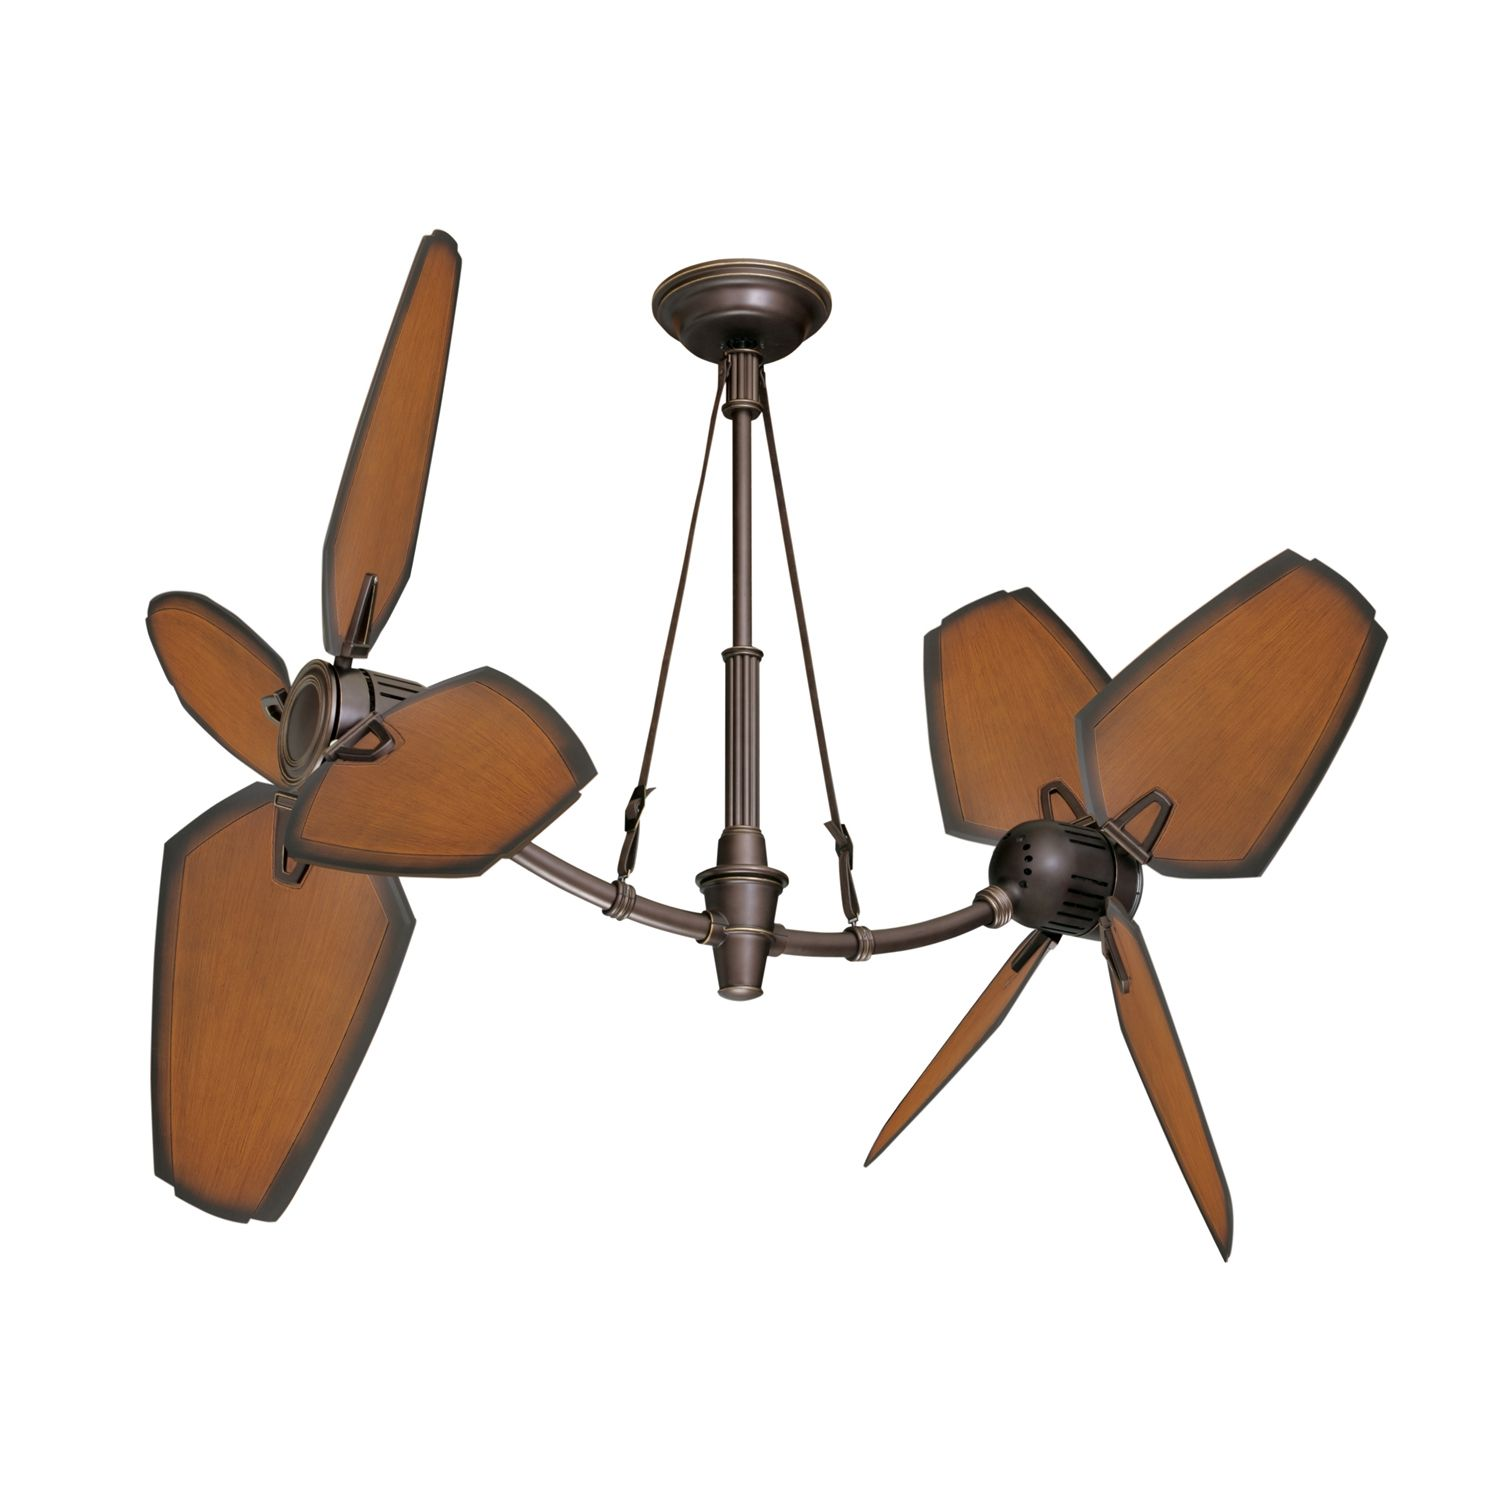 Emerson electric cf3300orh st croix indoor ceiling fan at atg emerson electric cf3300orh st croix indoor ceiling fan at atg stores aloadofball Image collections